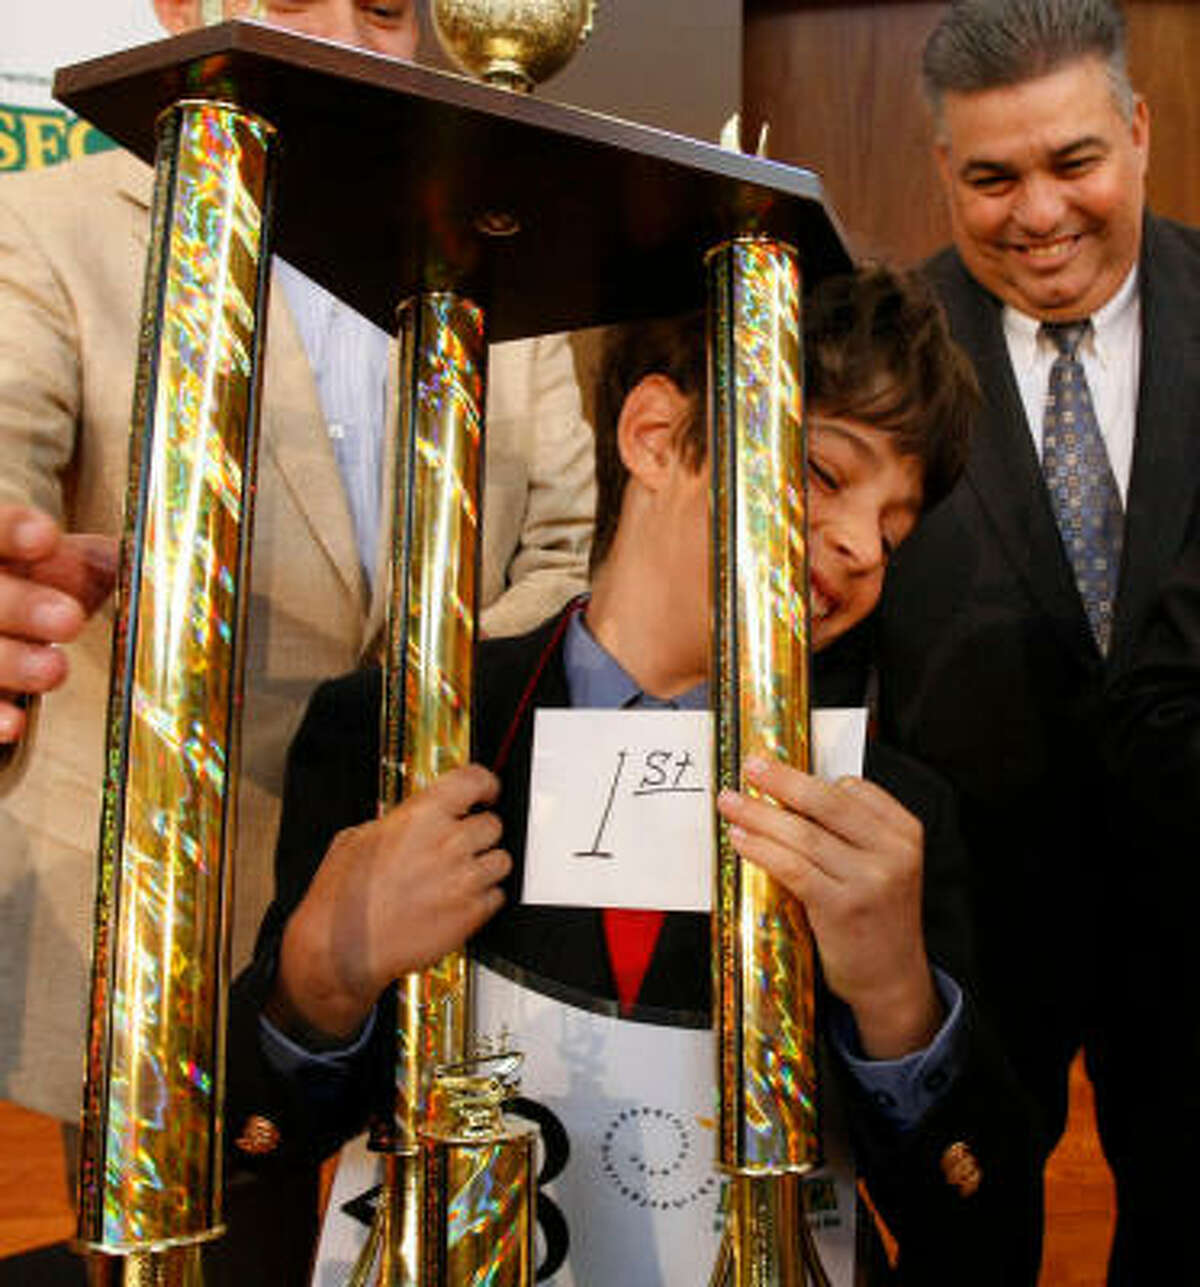 Jacob Roffwarg, 10, of HISD's Mark Twain Elementary, struggles with his trophy Saturday after winning the annual Maseca Bilingual Spelling Bee at Houston Baptist University.